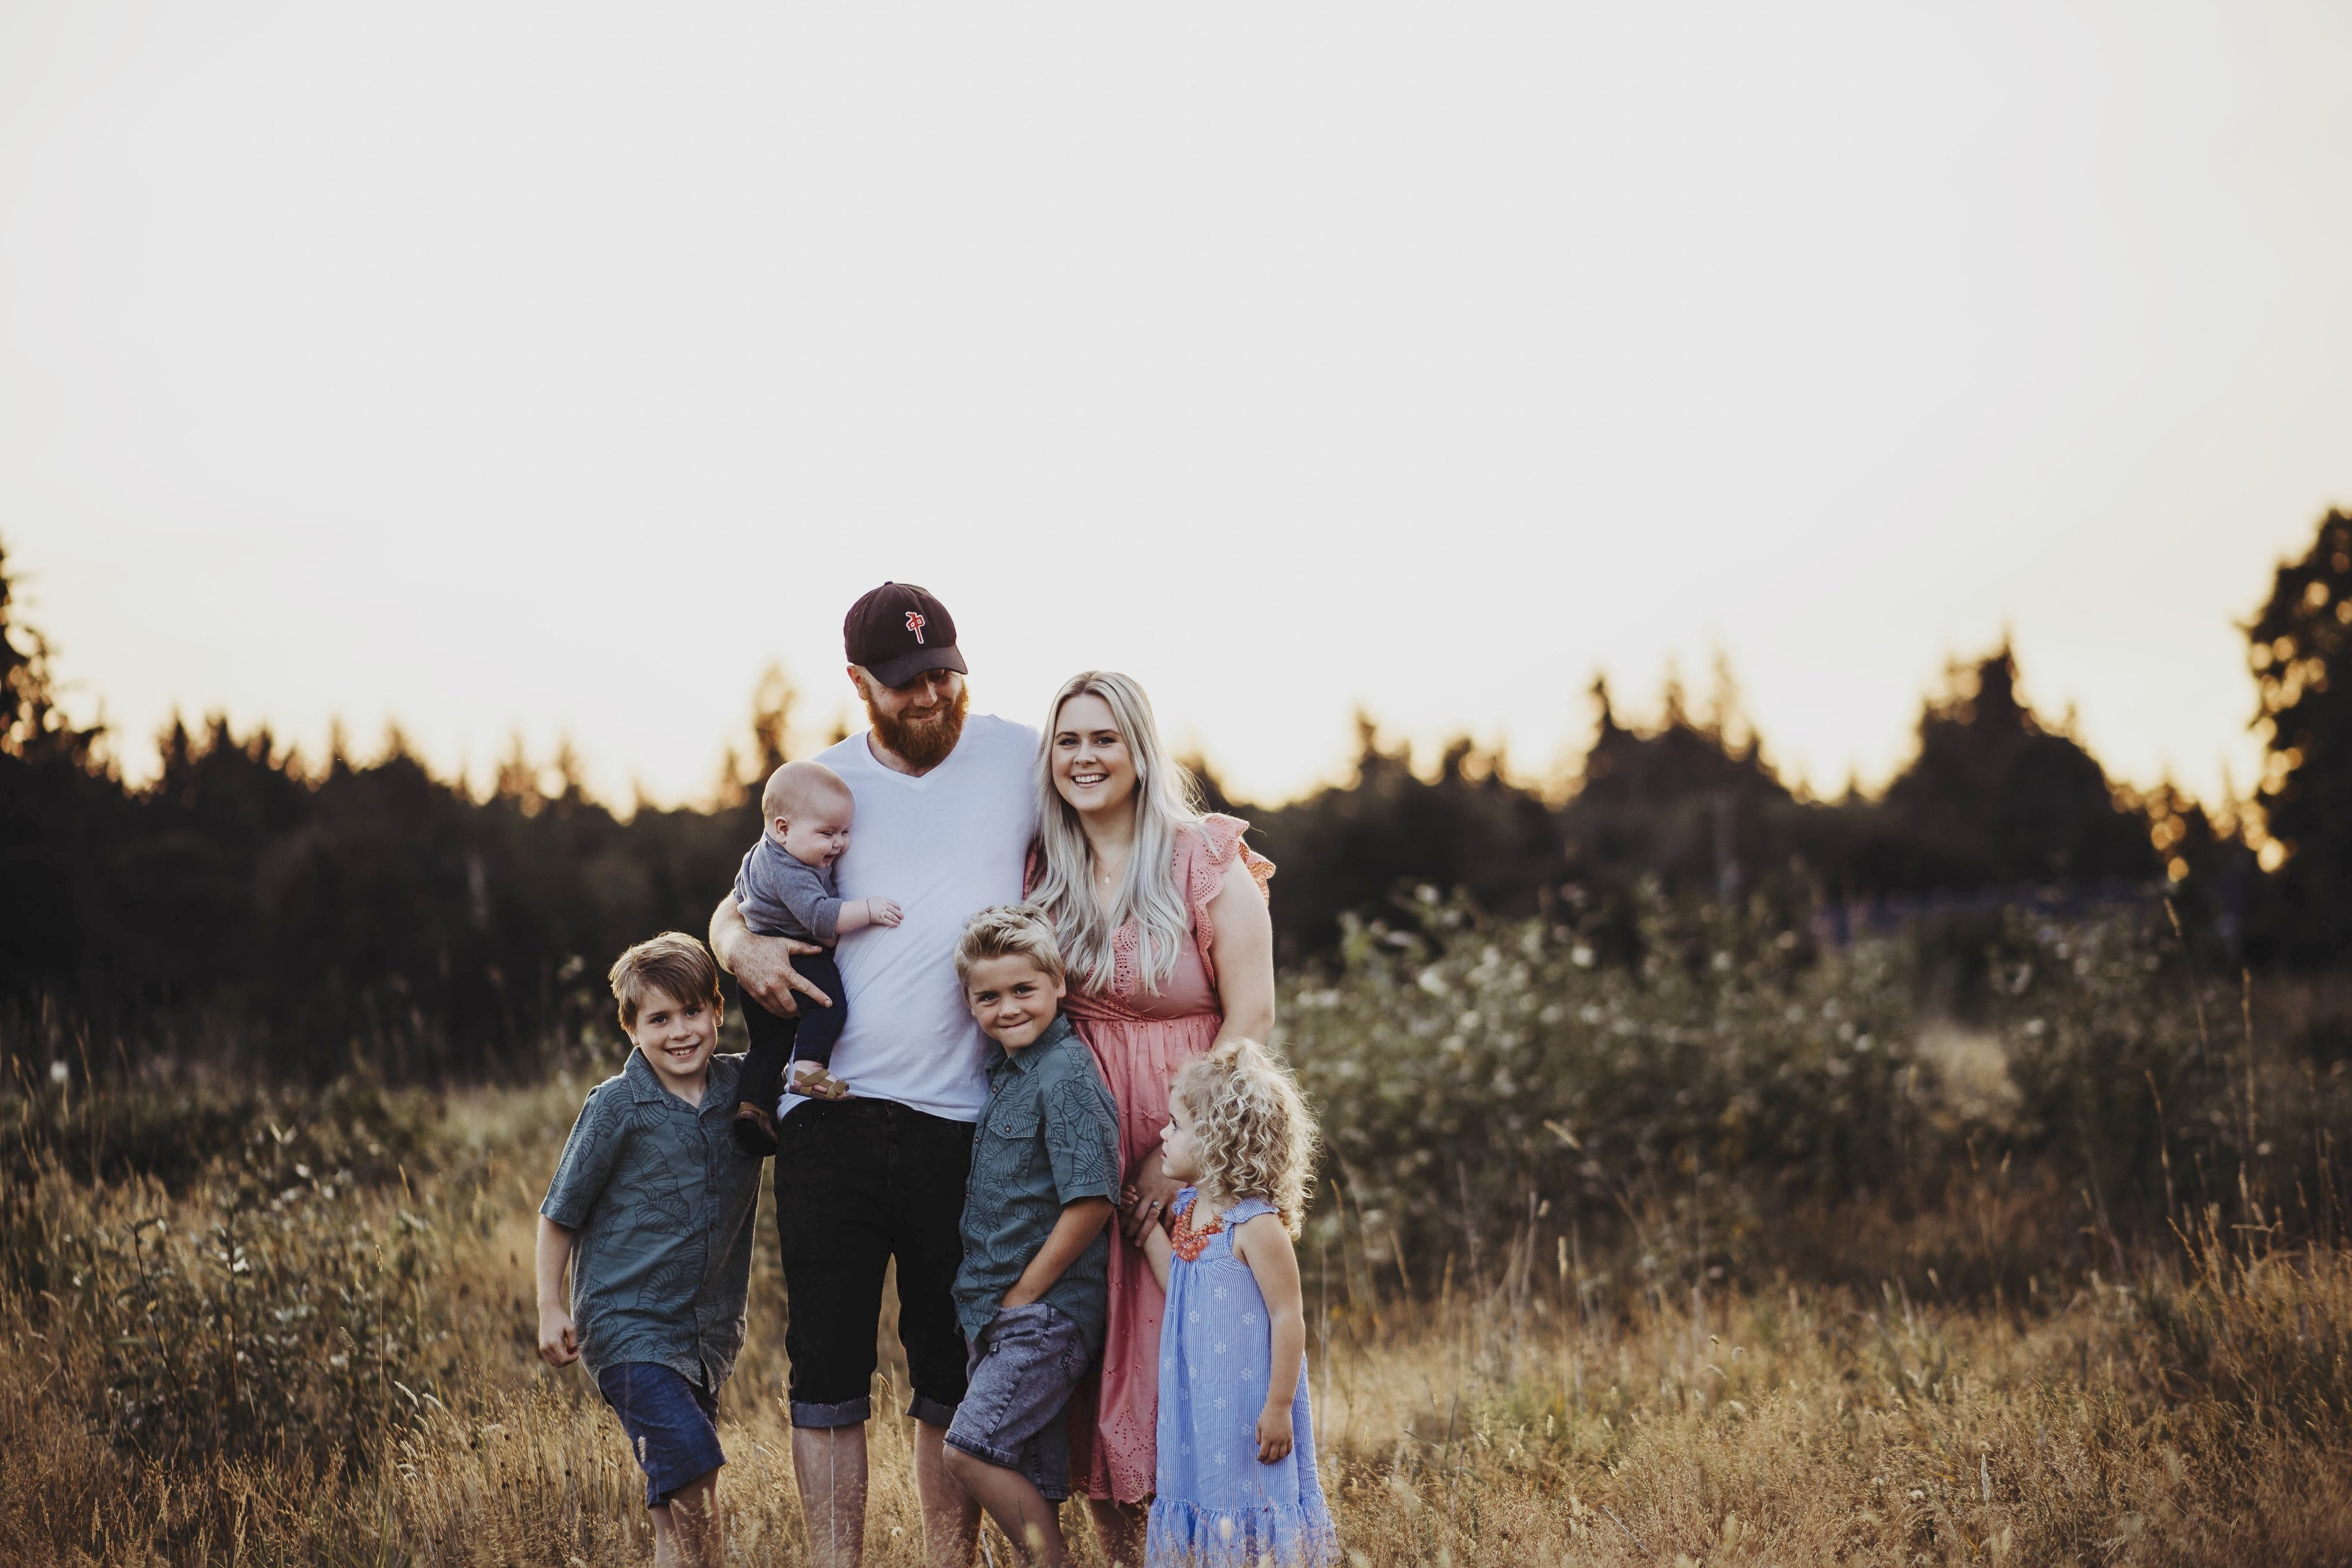 Anxiety, It is one of the worst qualities. Speaking out about how as moms in 2018 we are basically raising our kids in the age of fear